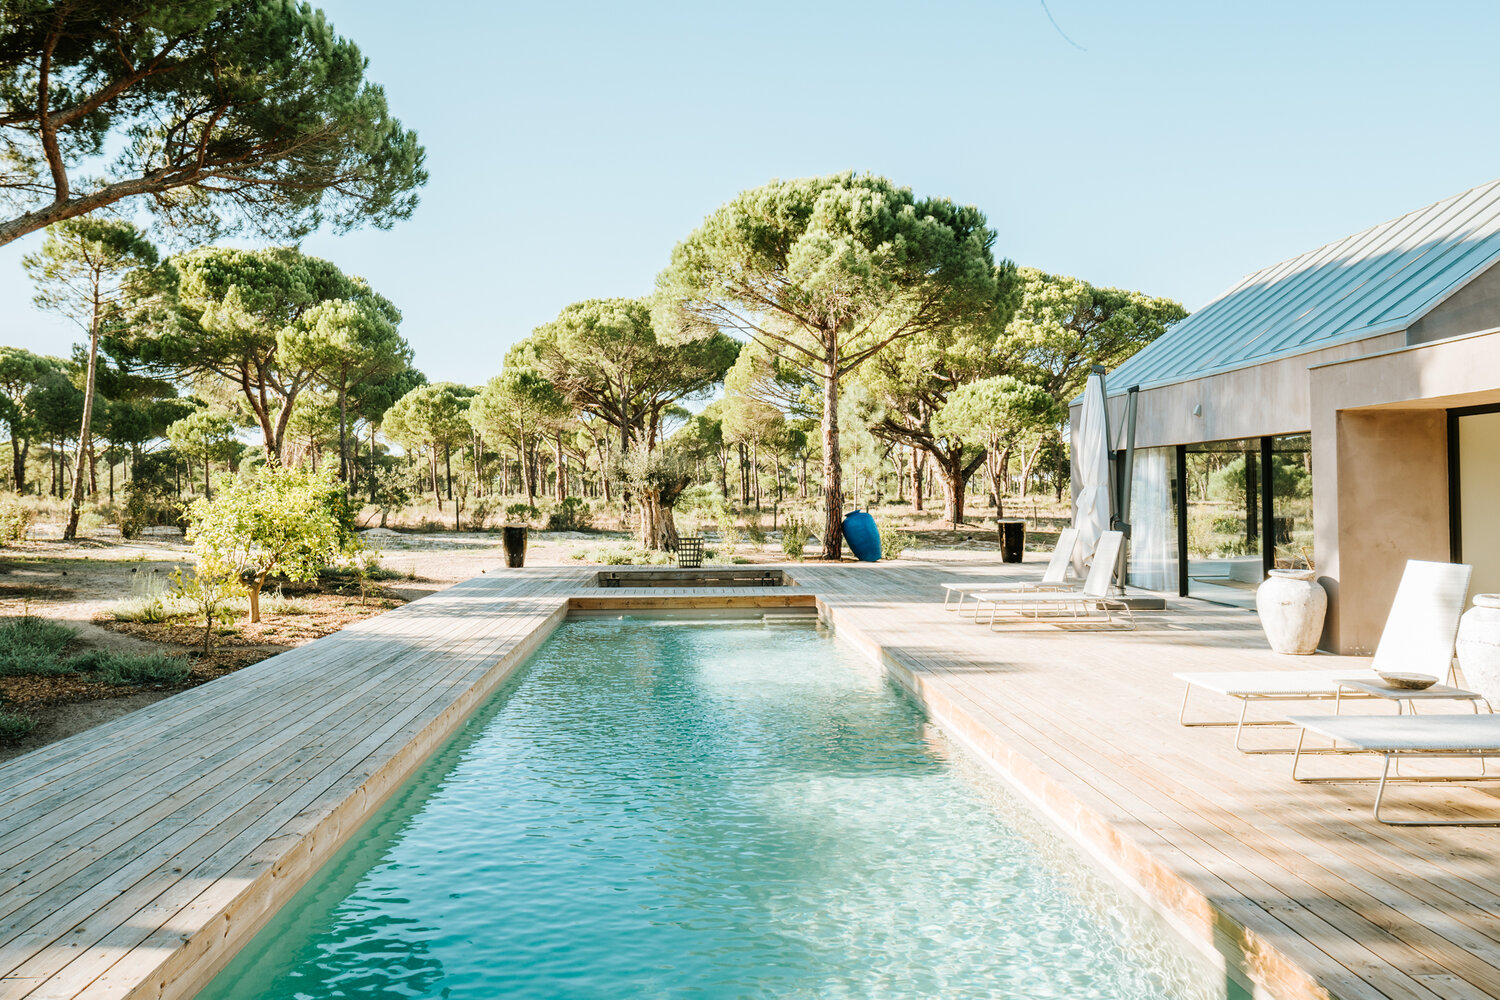 Villa Sublime Comporta e Coolnvintage